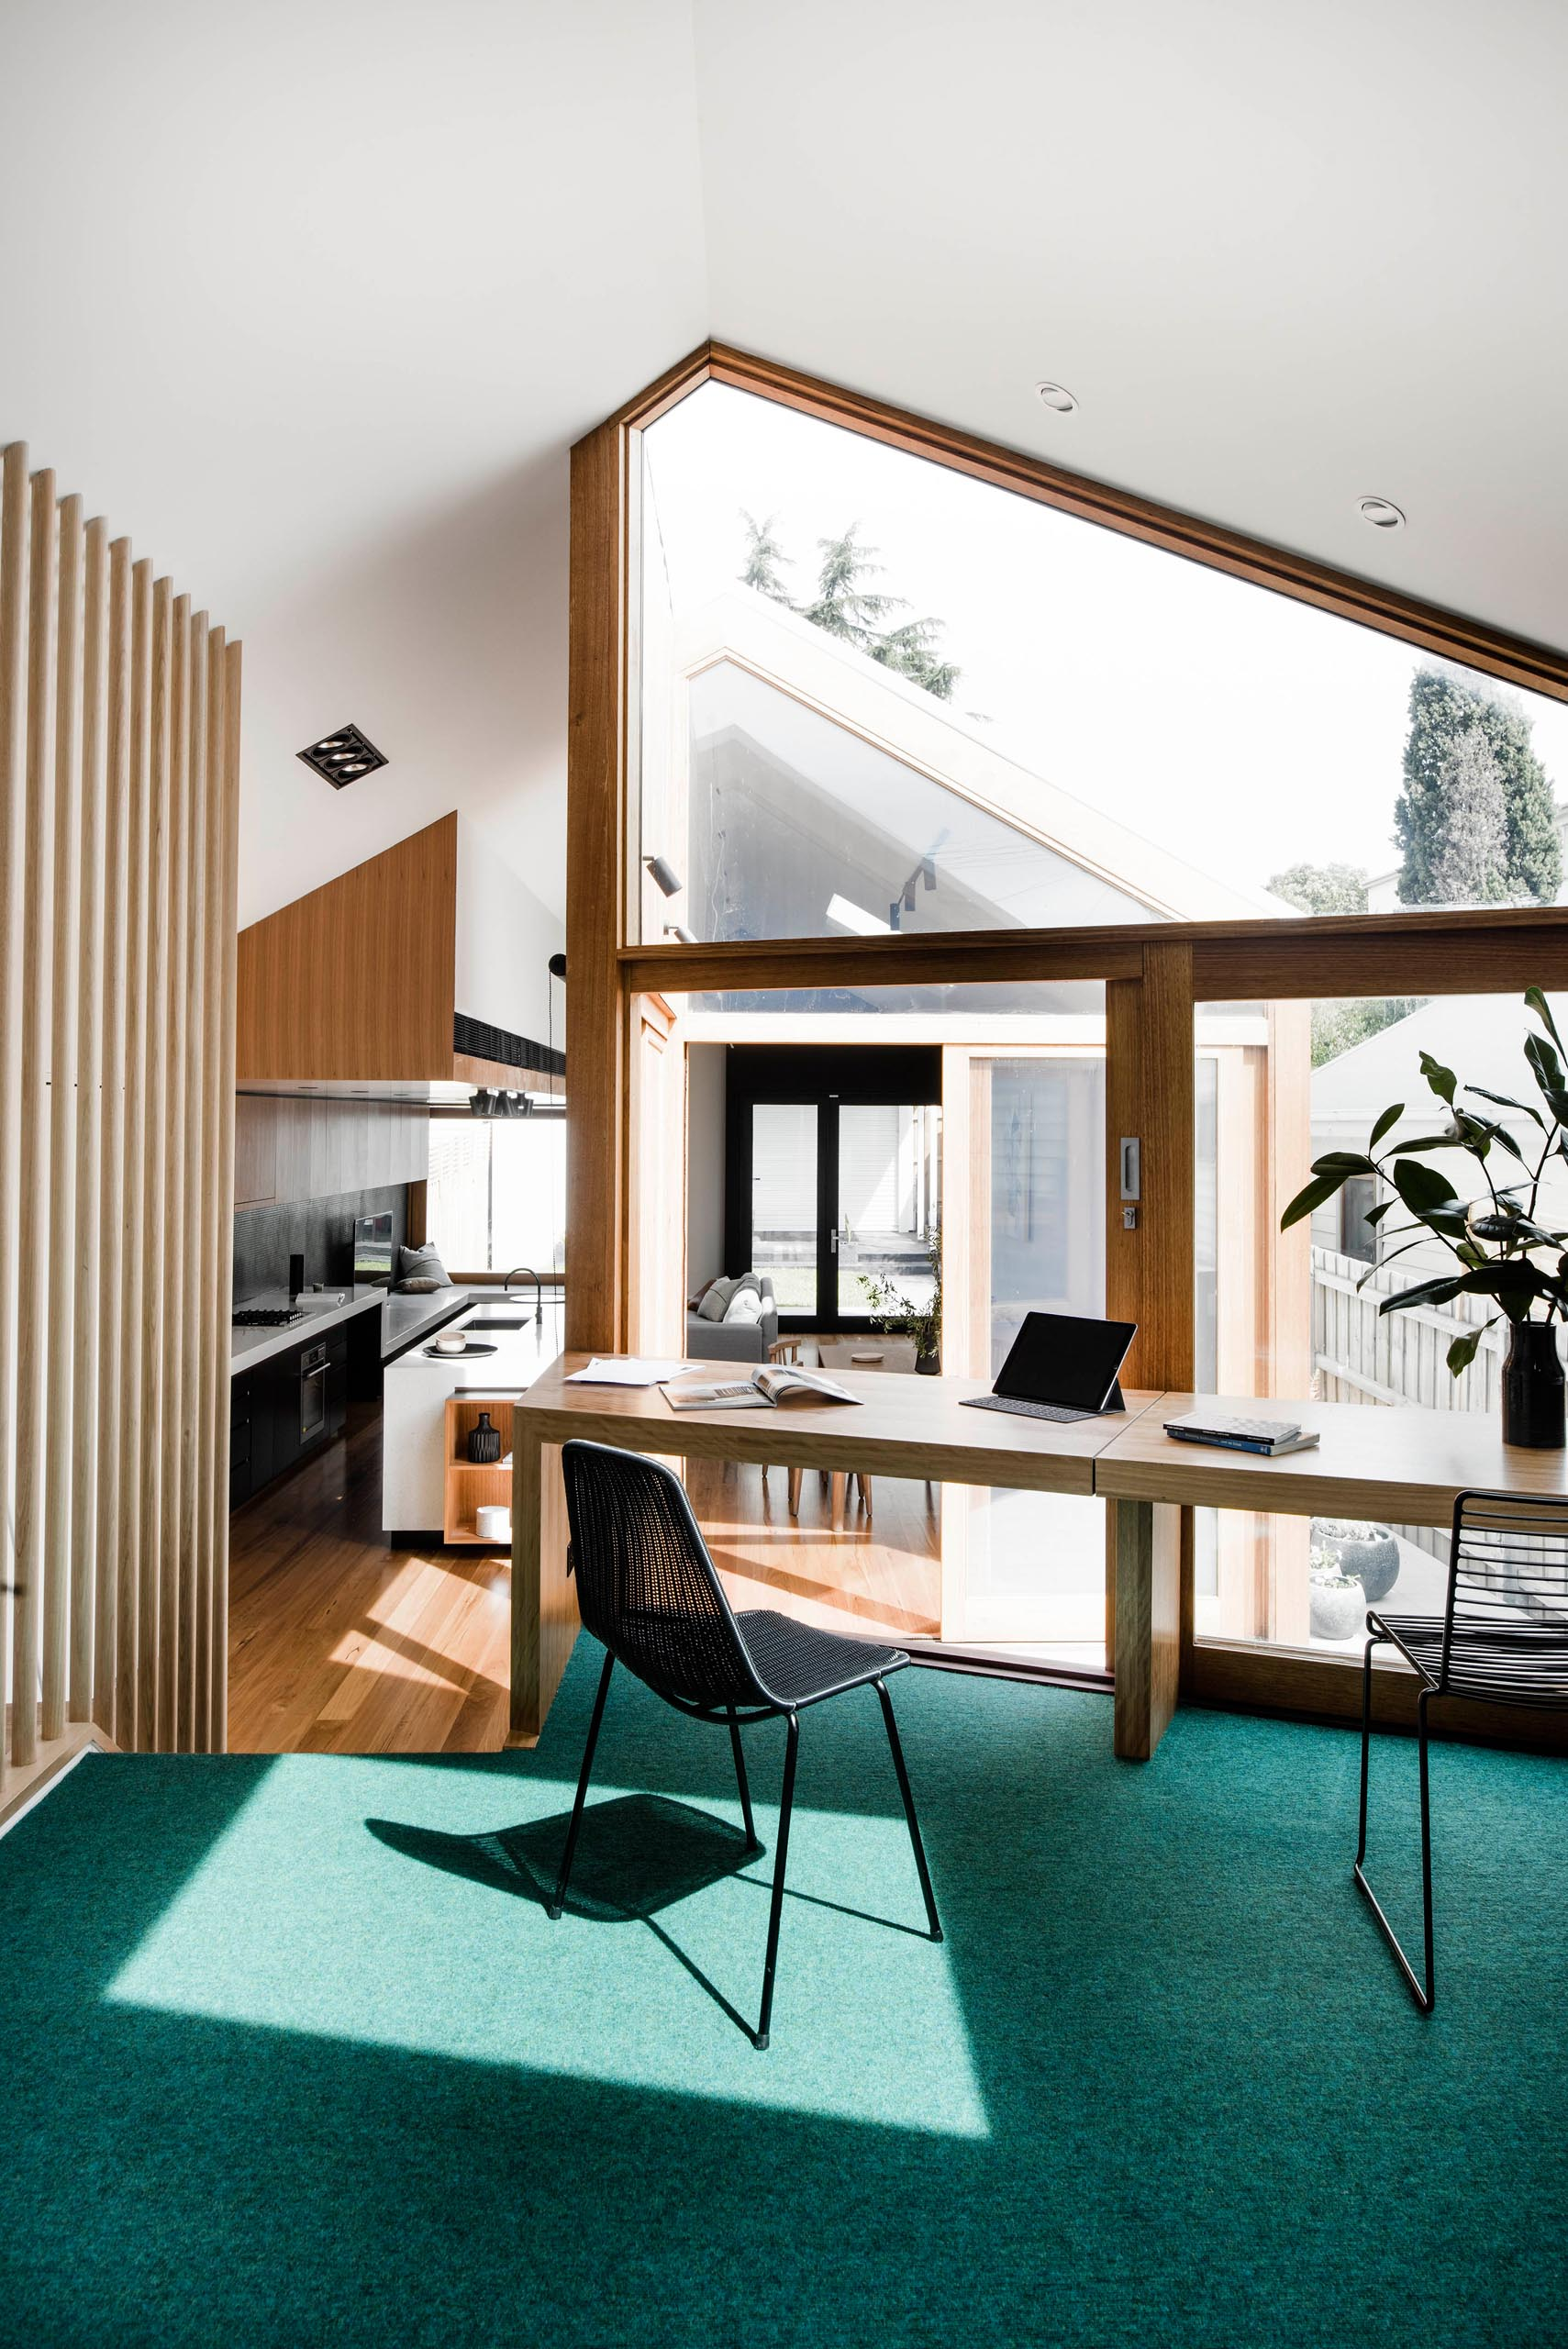 A modern house with a home office that has green carpet and a desk that lines the angled window and overlooks a small courtyard.